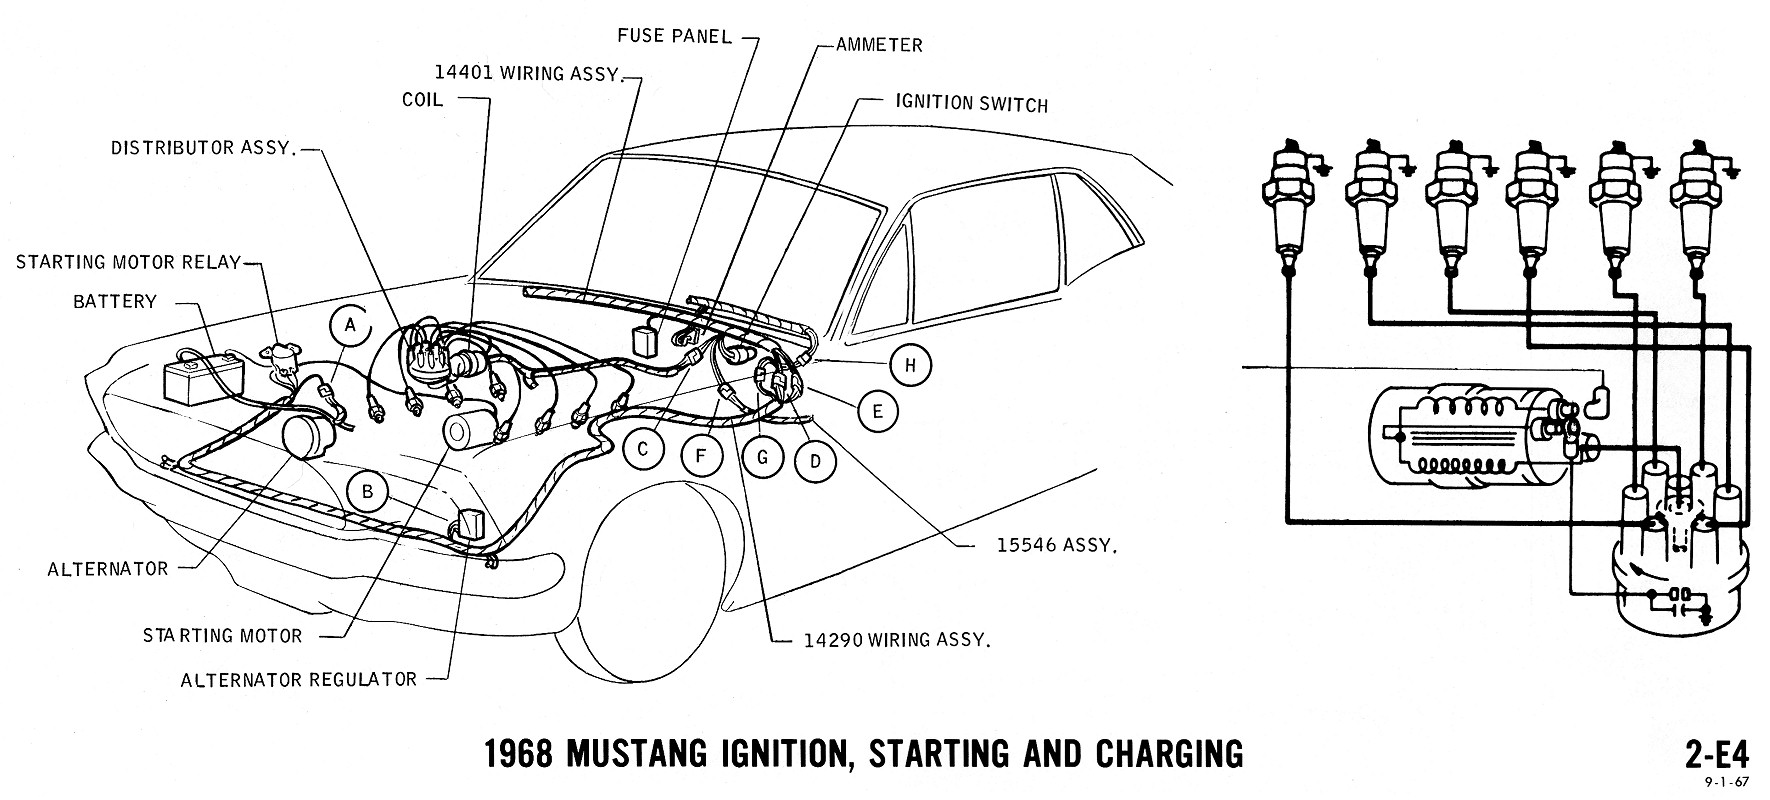 1968 Mustang Wiring Diagram Vacuum Schematics on windshield wiper motor wiring harness